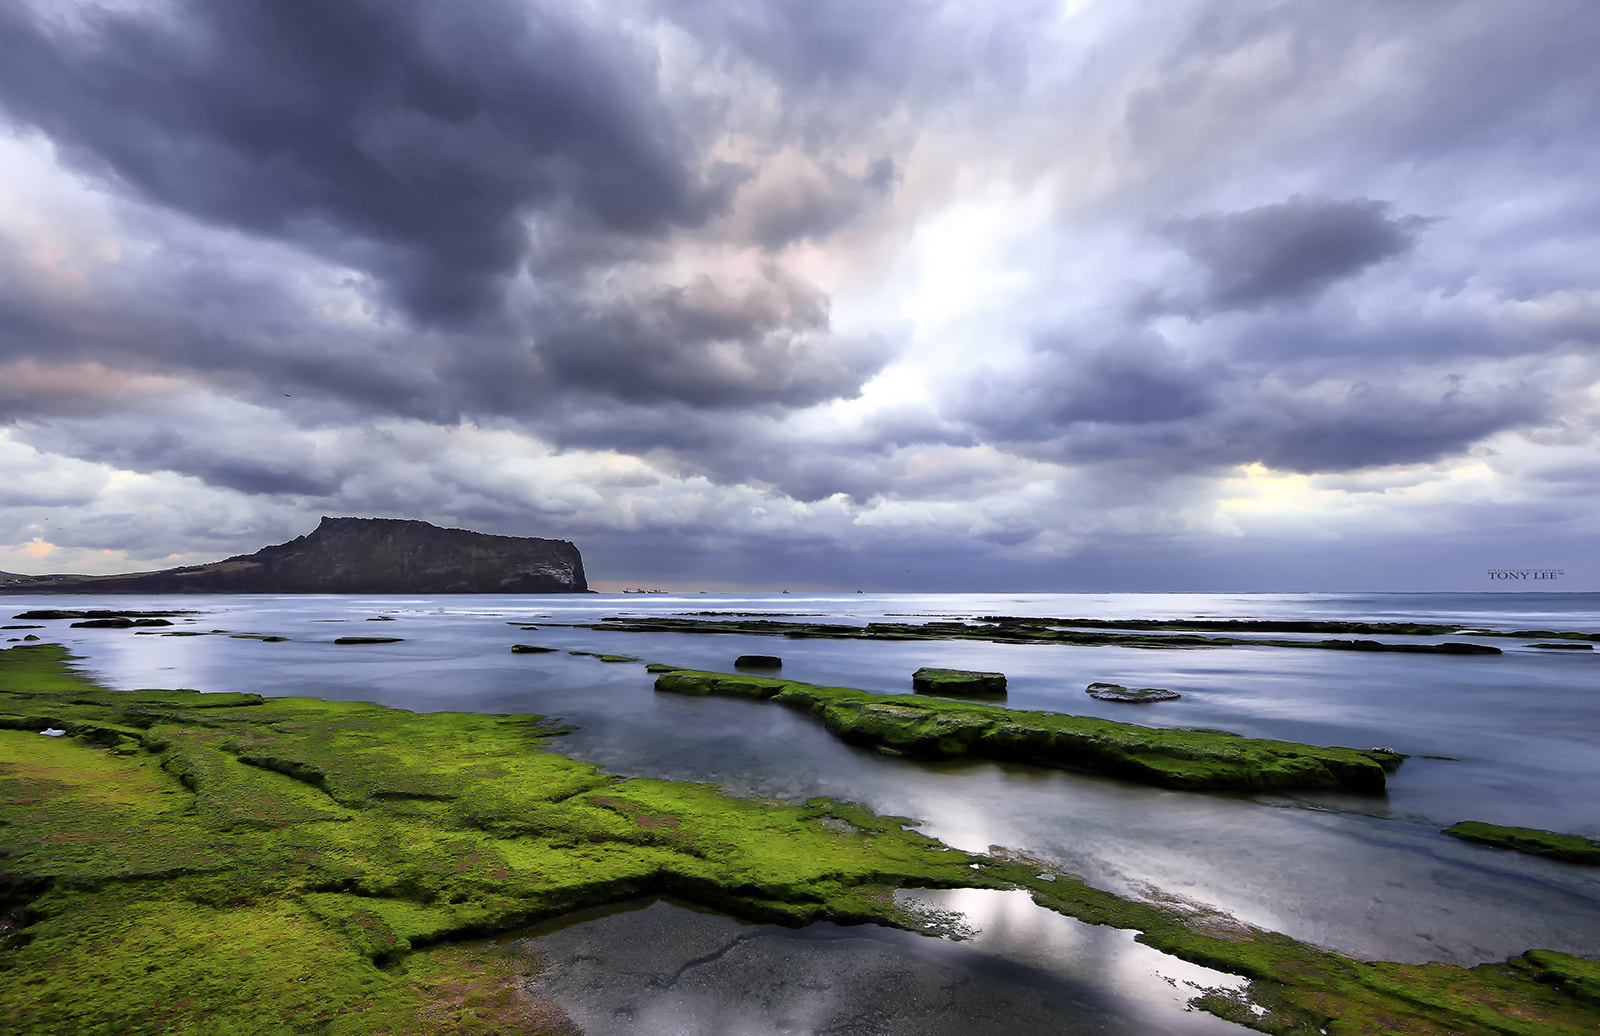 Photograph The Calm Before The Storm by Tony Lee on 500px